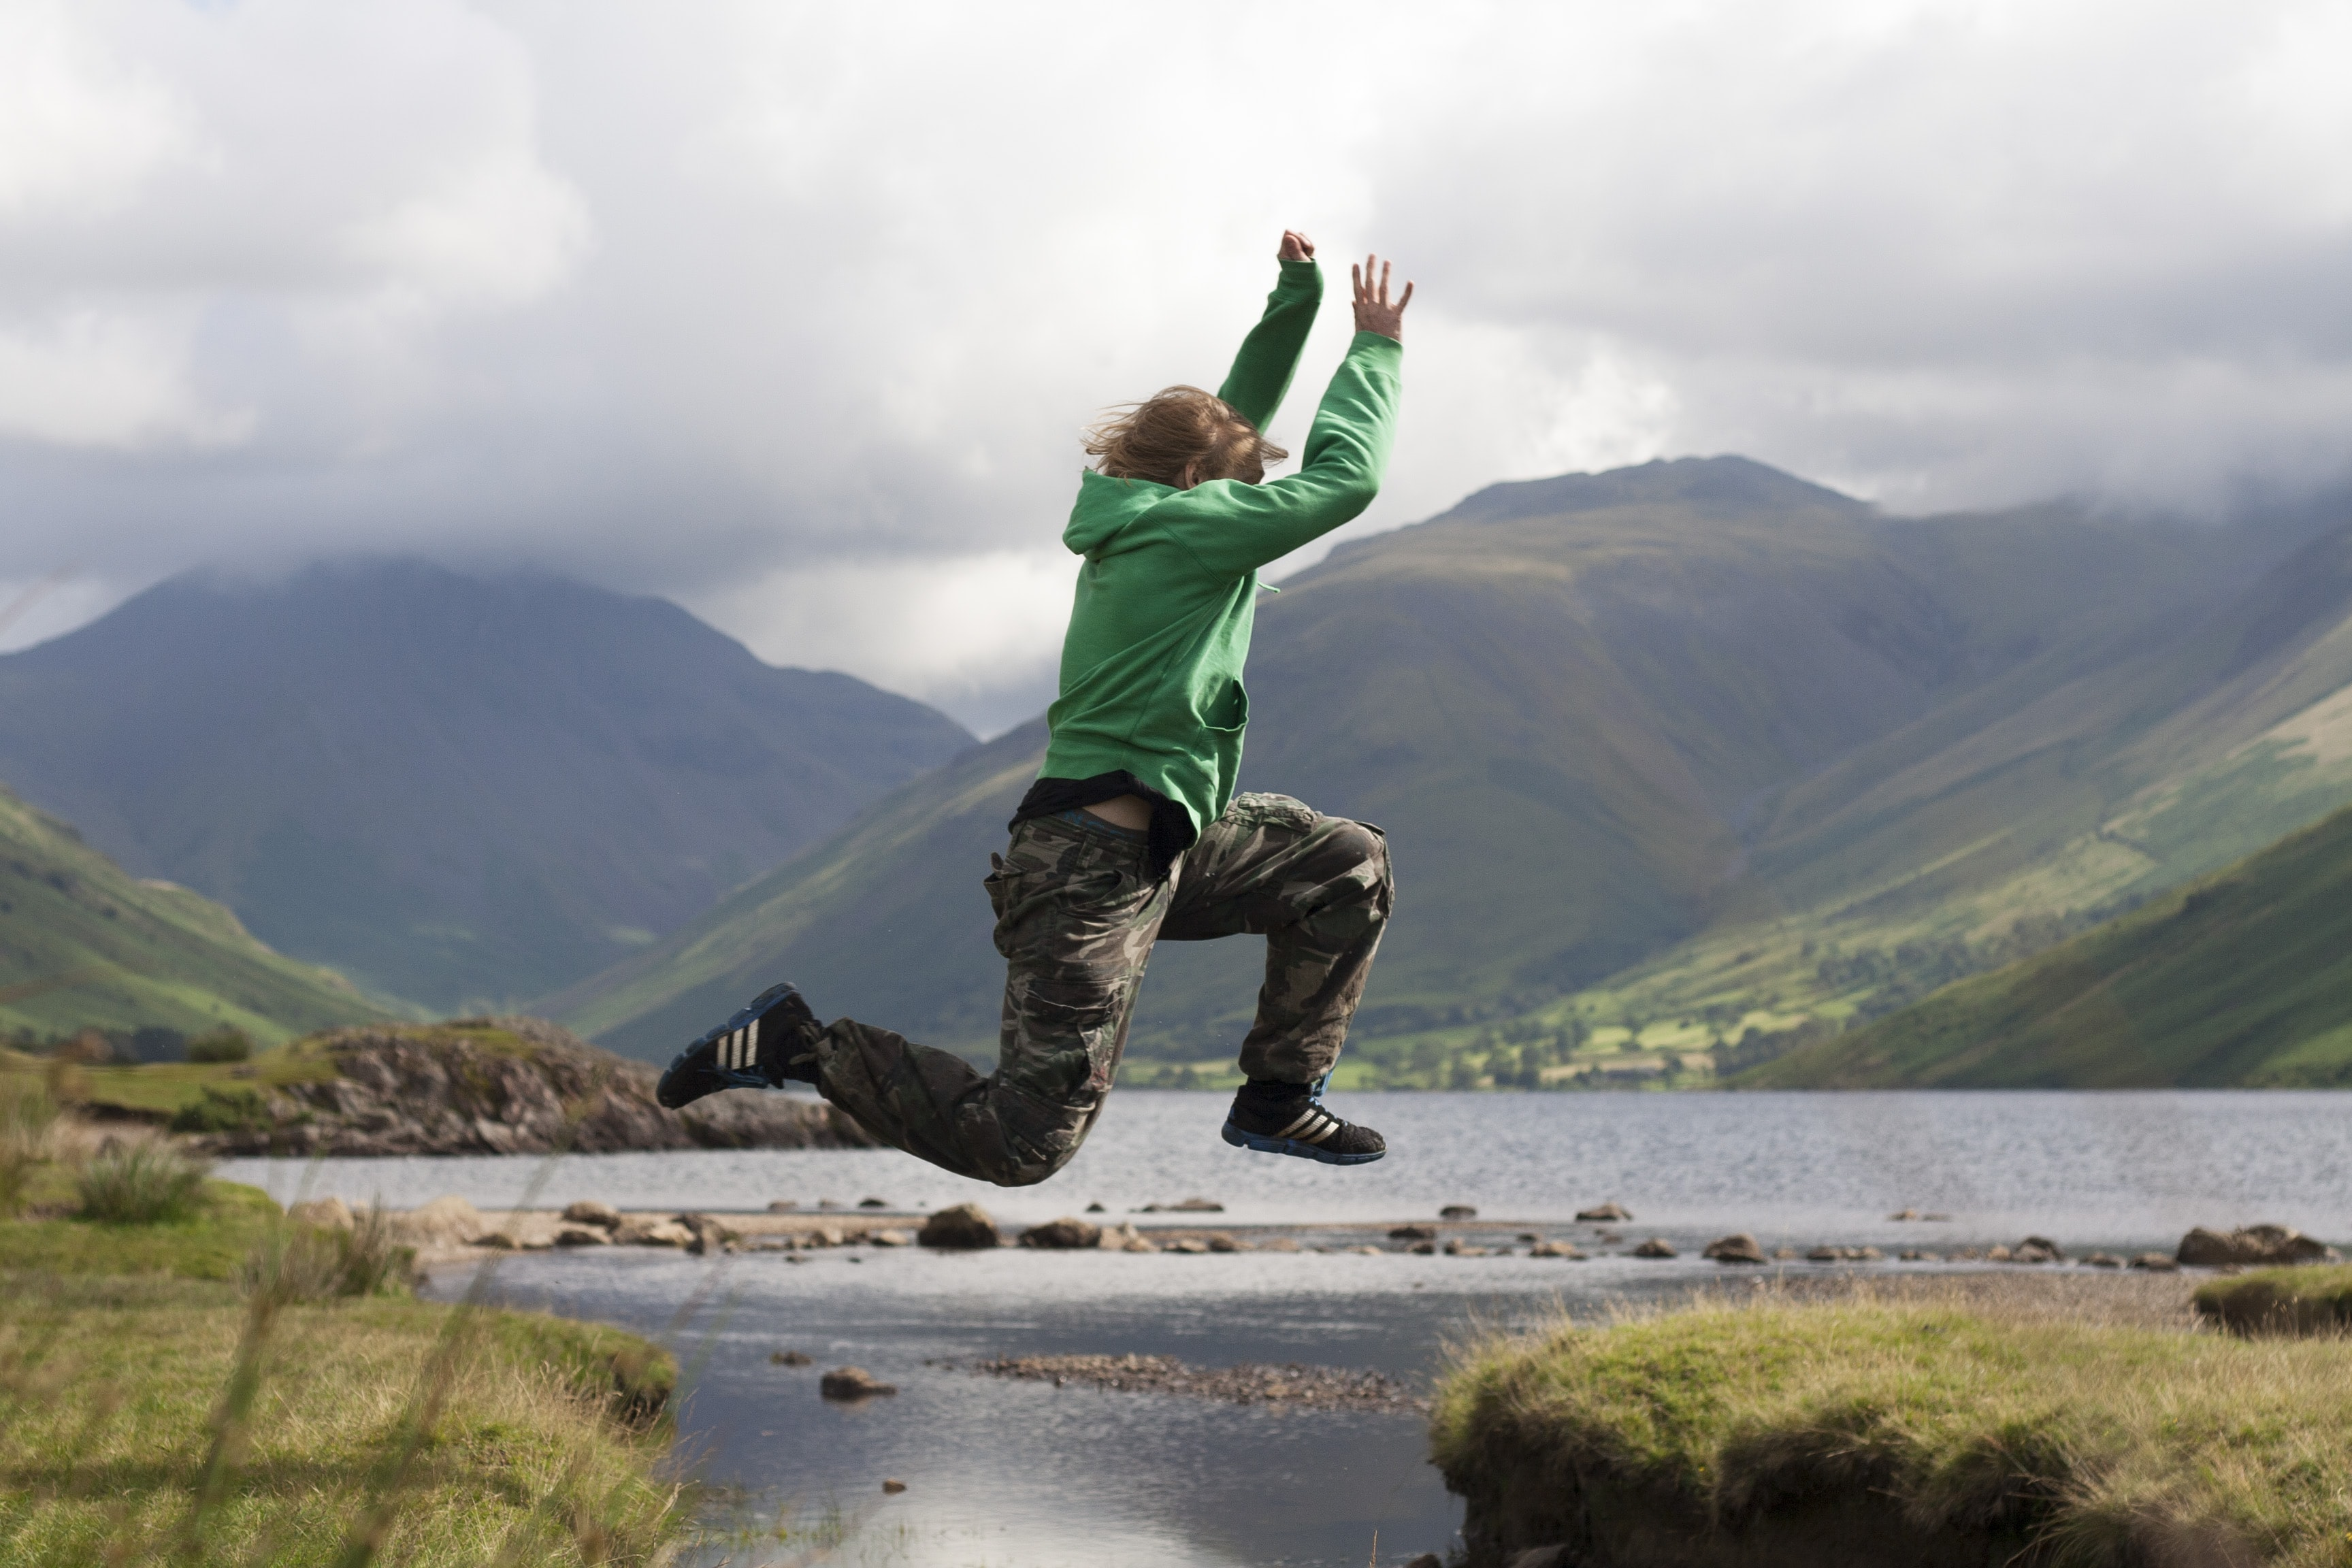 A person wearing camo pants and a green sweatshirt jumping by a lake and mountains in Scafell Pike